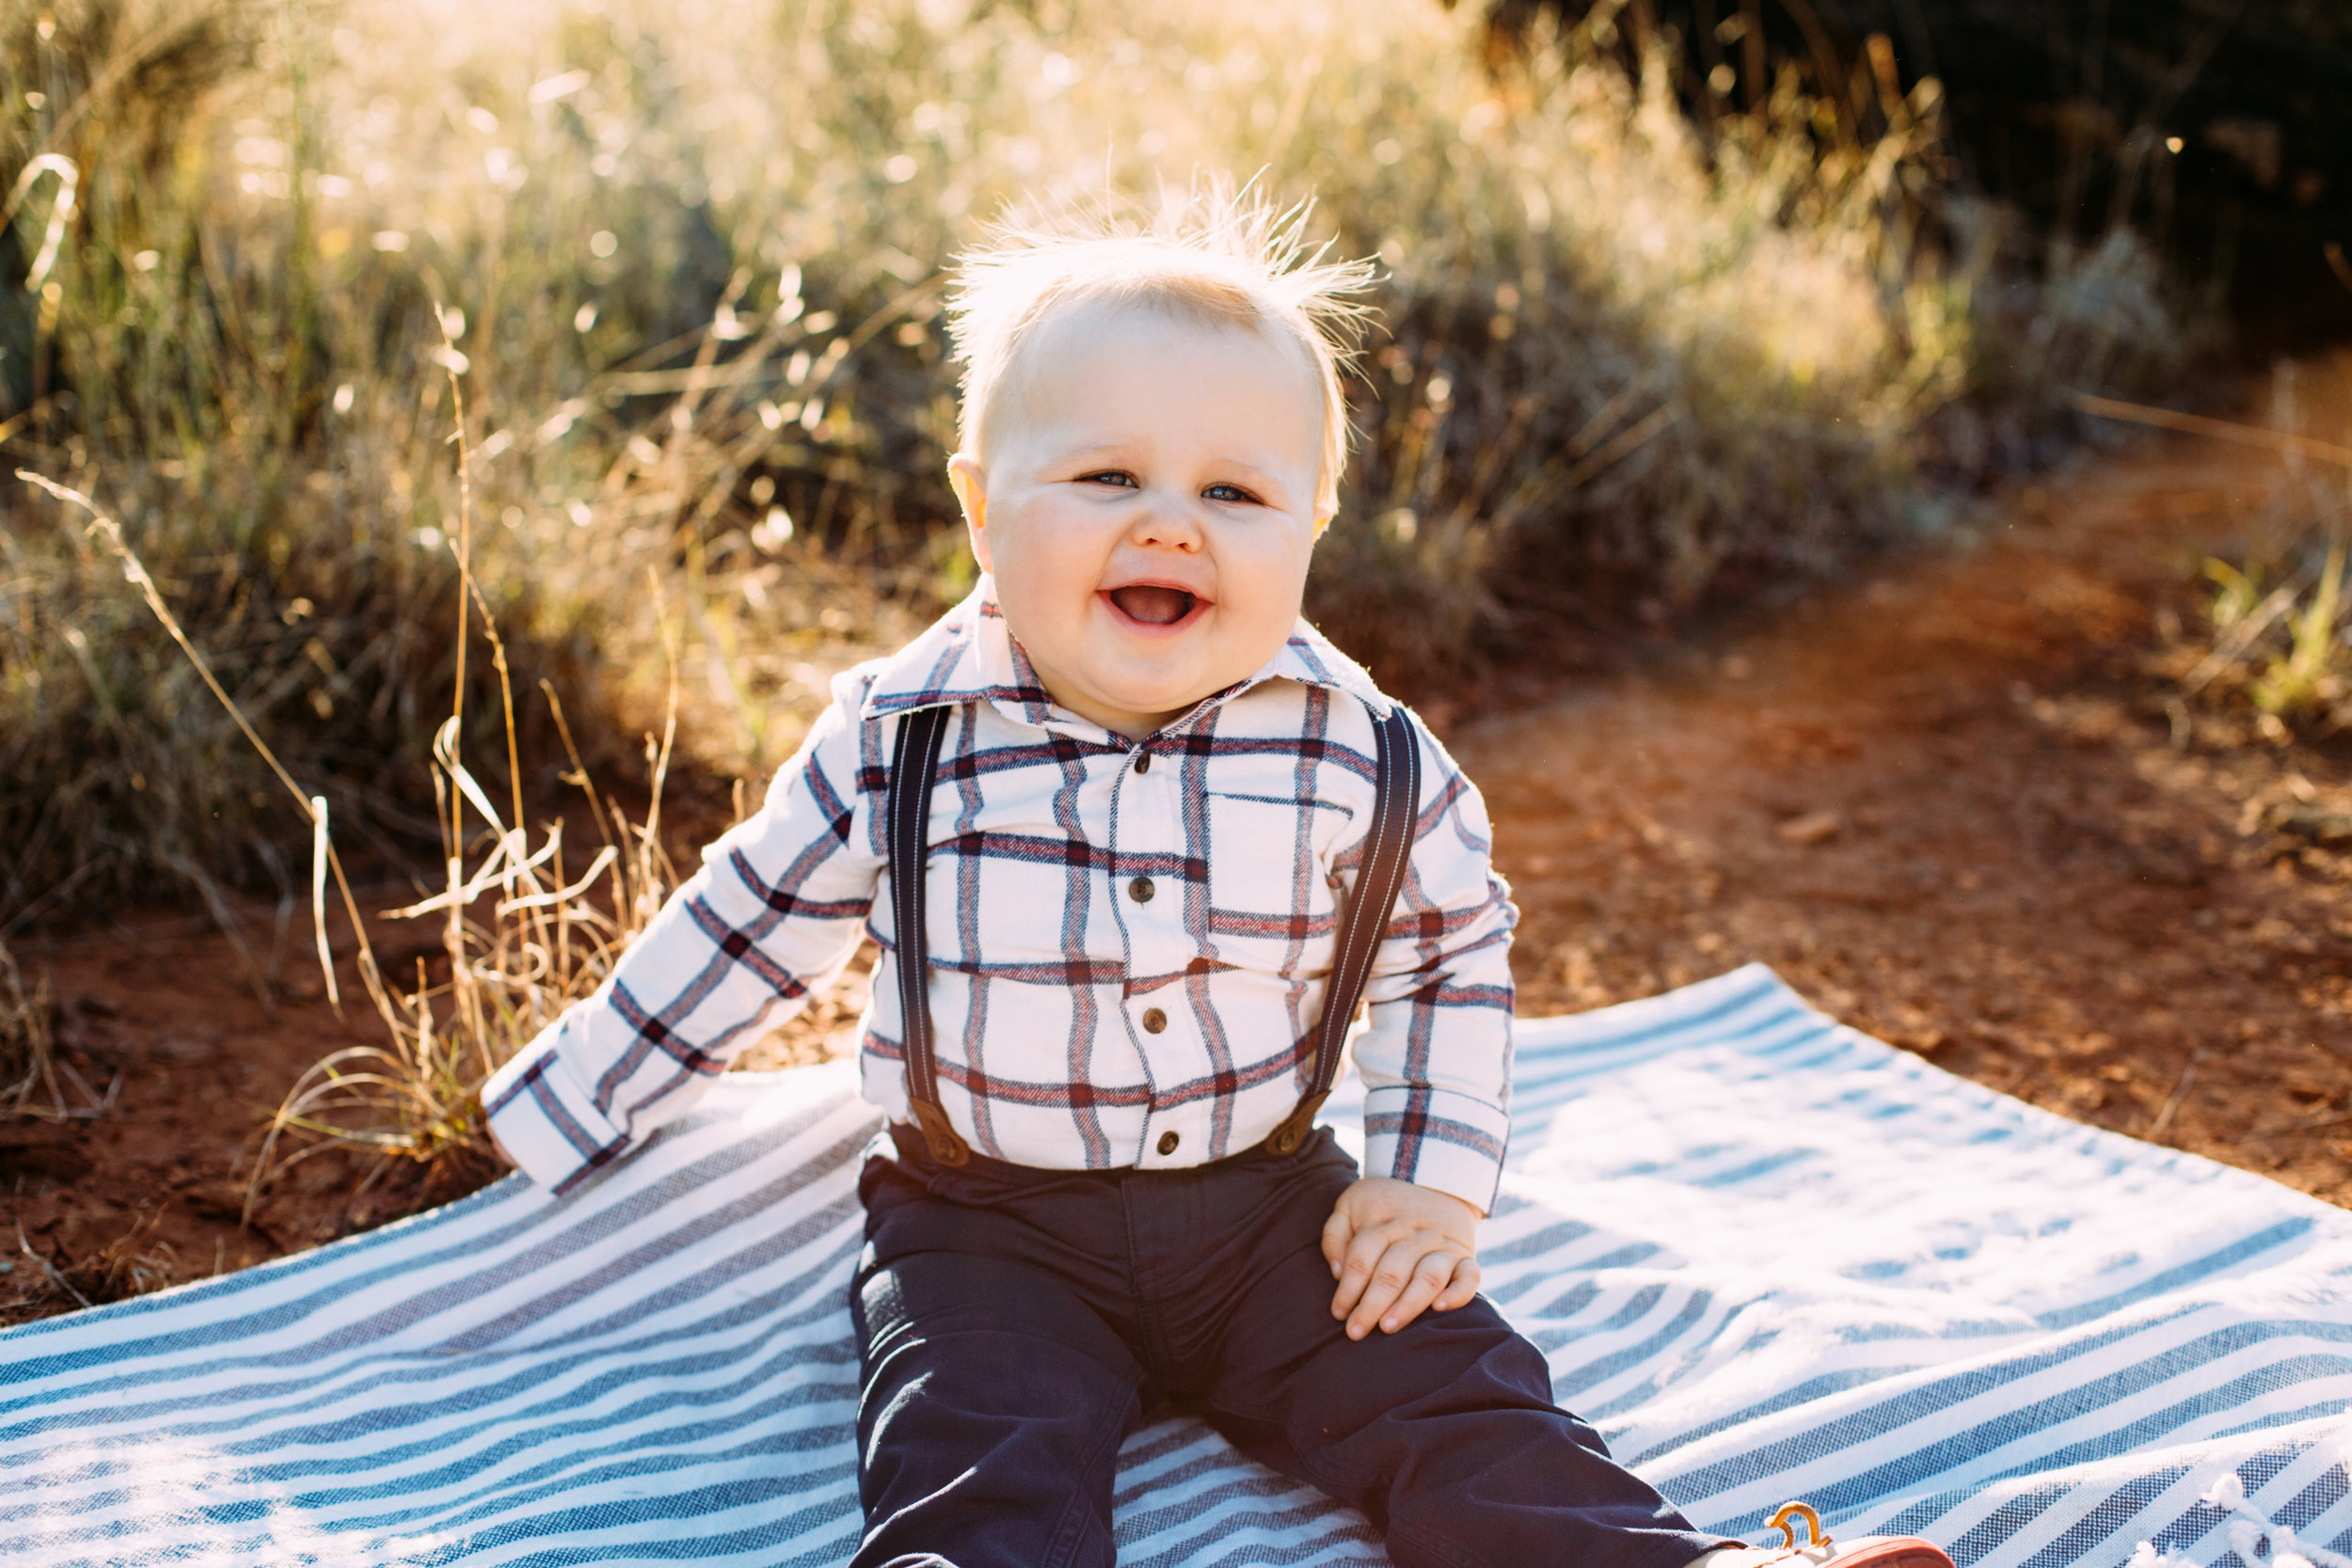 Big laughs and smiles from baby brother as he sits on picnic blanket #tealawardphotography #texasfamilyphotographer #amarillophotographer #amarillofamilyphotographer #lifestylephotography #emotionalphotography #familyphotosoot #family #lovingsiblings #purejoy #familyphotos #familyphotographer #greatoutdoors